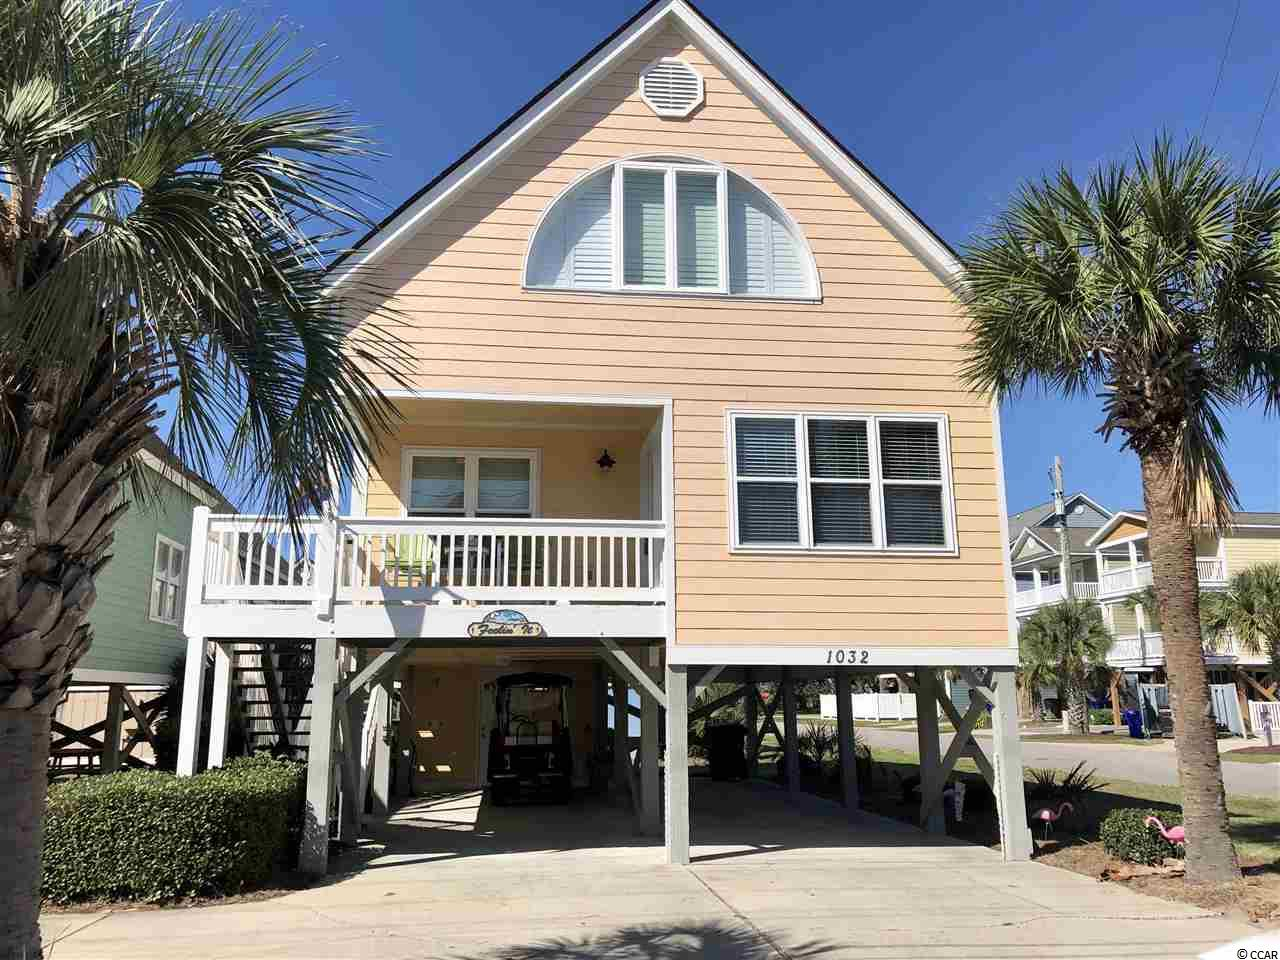 If you are looking for a beautiful beach house, being sold fully furnished in the heart of Surfside Beach, this is it!  Enjoy the ocean view from your balcony and walk right across Ocean Blvd to enjoy a day at the beach!  This beautiful raised beach house in the Sea Bridge subdivision is perfect for a second home, investment property or your primary home!  Featuring 3 bedrooms and 2.5 baths with an additional space upstairs that could easily fit two twin beds or be used as a sitting area, office or whatever you would like it to be!  The master bedroom is conveniently located on the first floor!   Some of the updates include new carpeting, plantation shutters, HVAC, tiled showers, TV's & siding!    Plenty of space under the house for 4 cars and you can store your golf cart in the attached garage space.  Don't forget to take advantage of your community pool and all the shopping and restaurants Surfside Beach has to offer!  Square footage is approximate & not guaranteed. Buyer is responsible for verification.